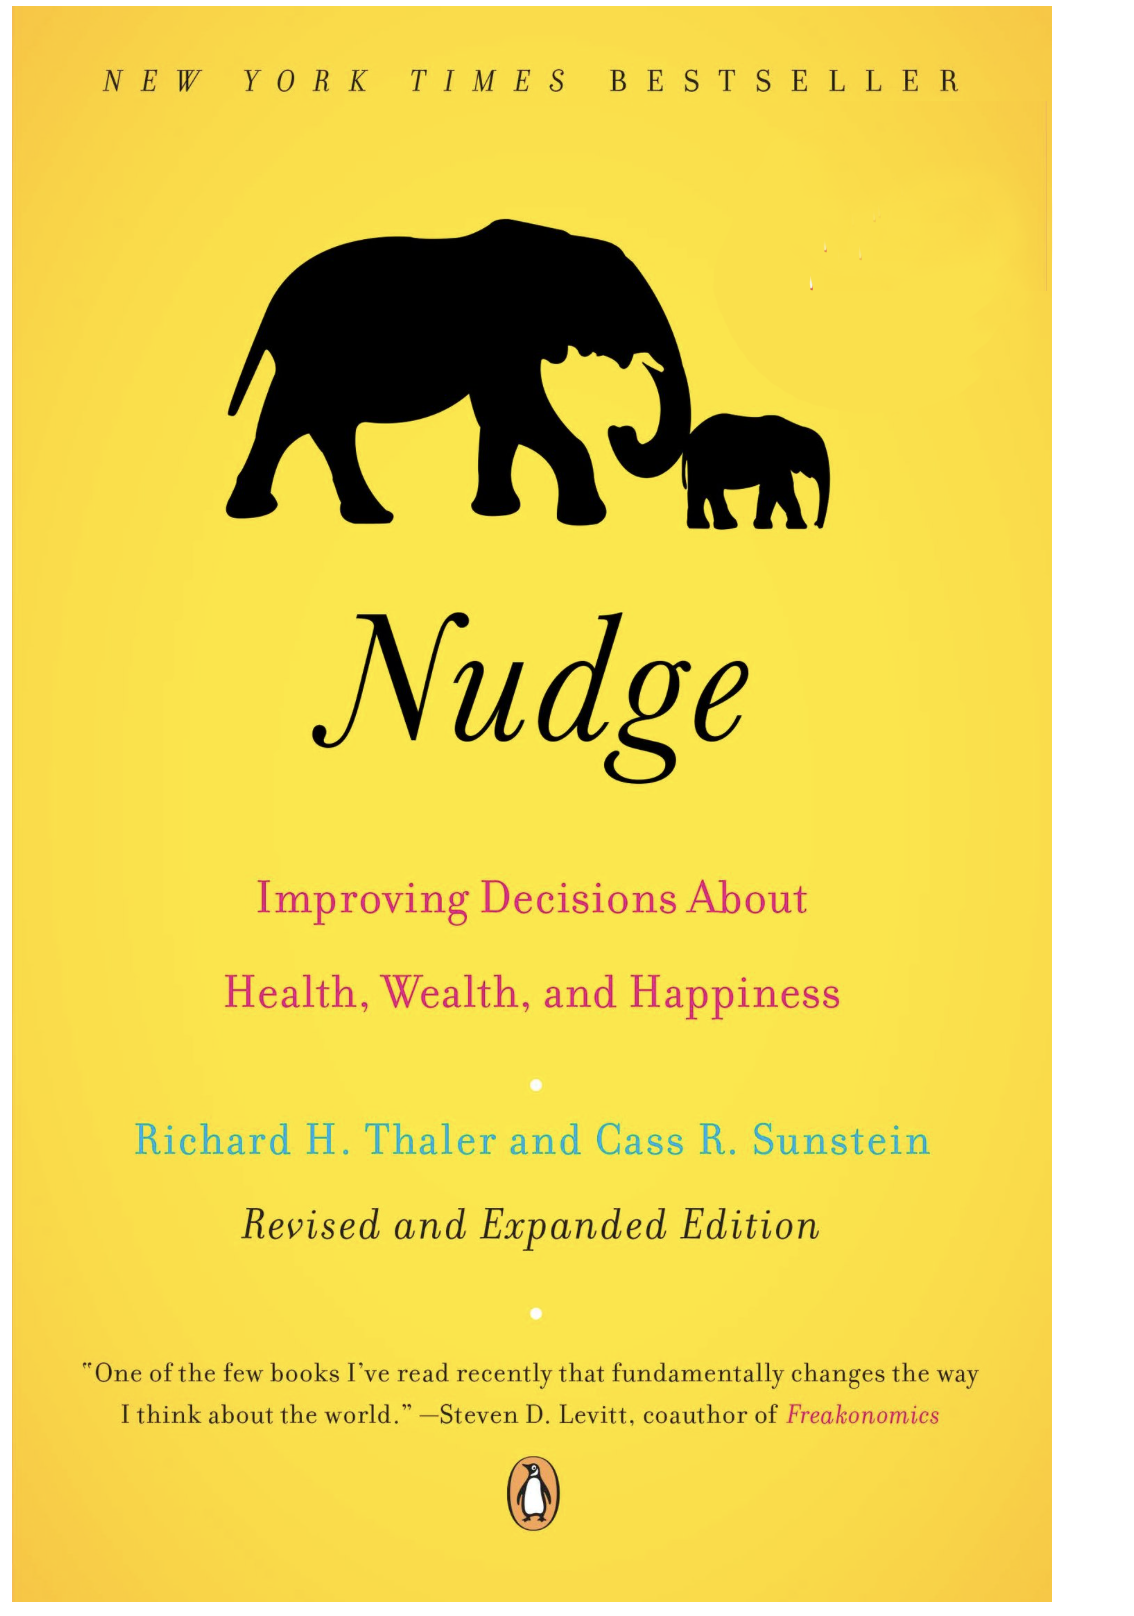 Nudge book cover